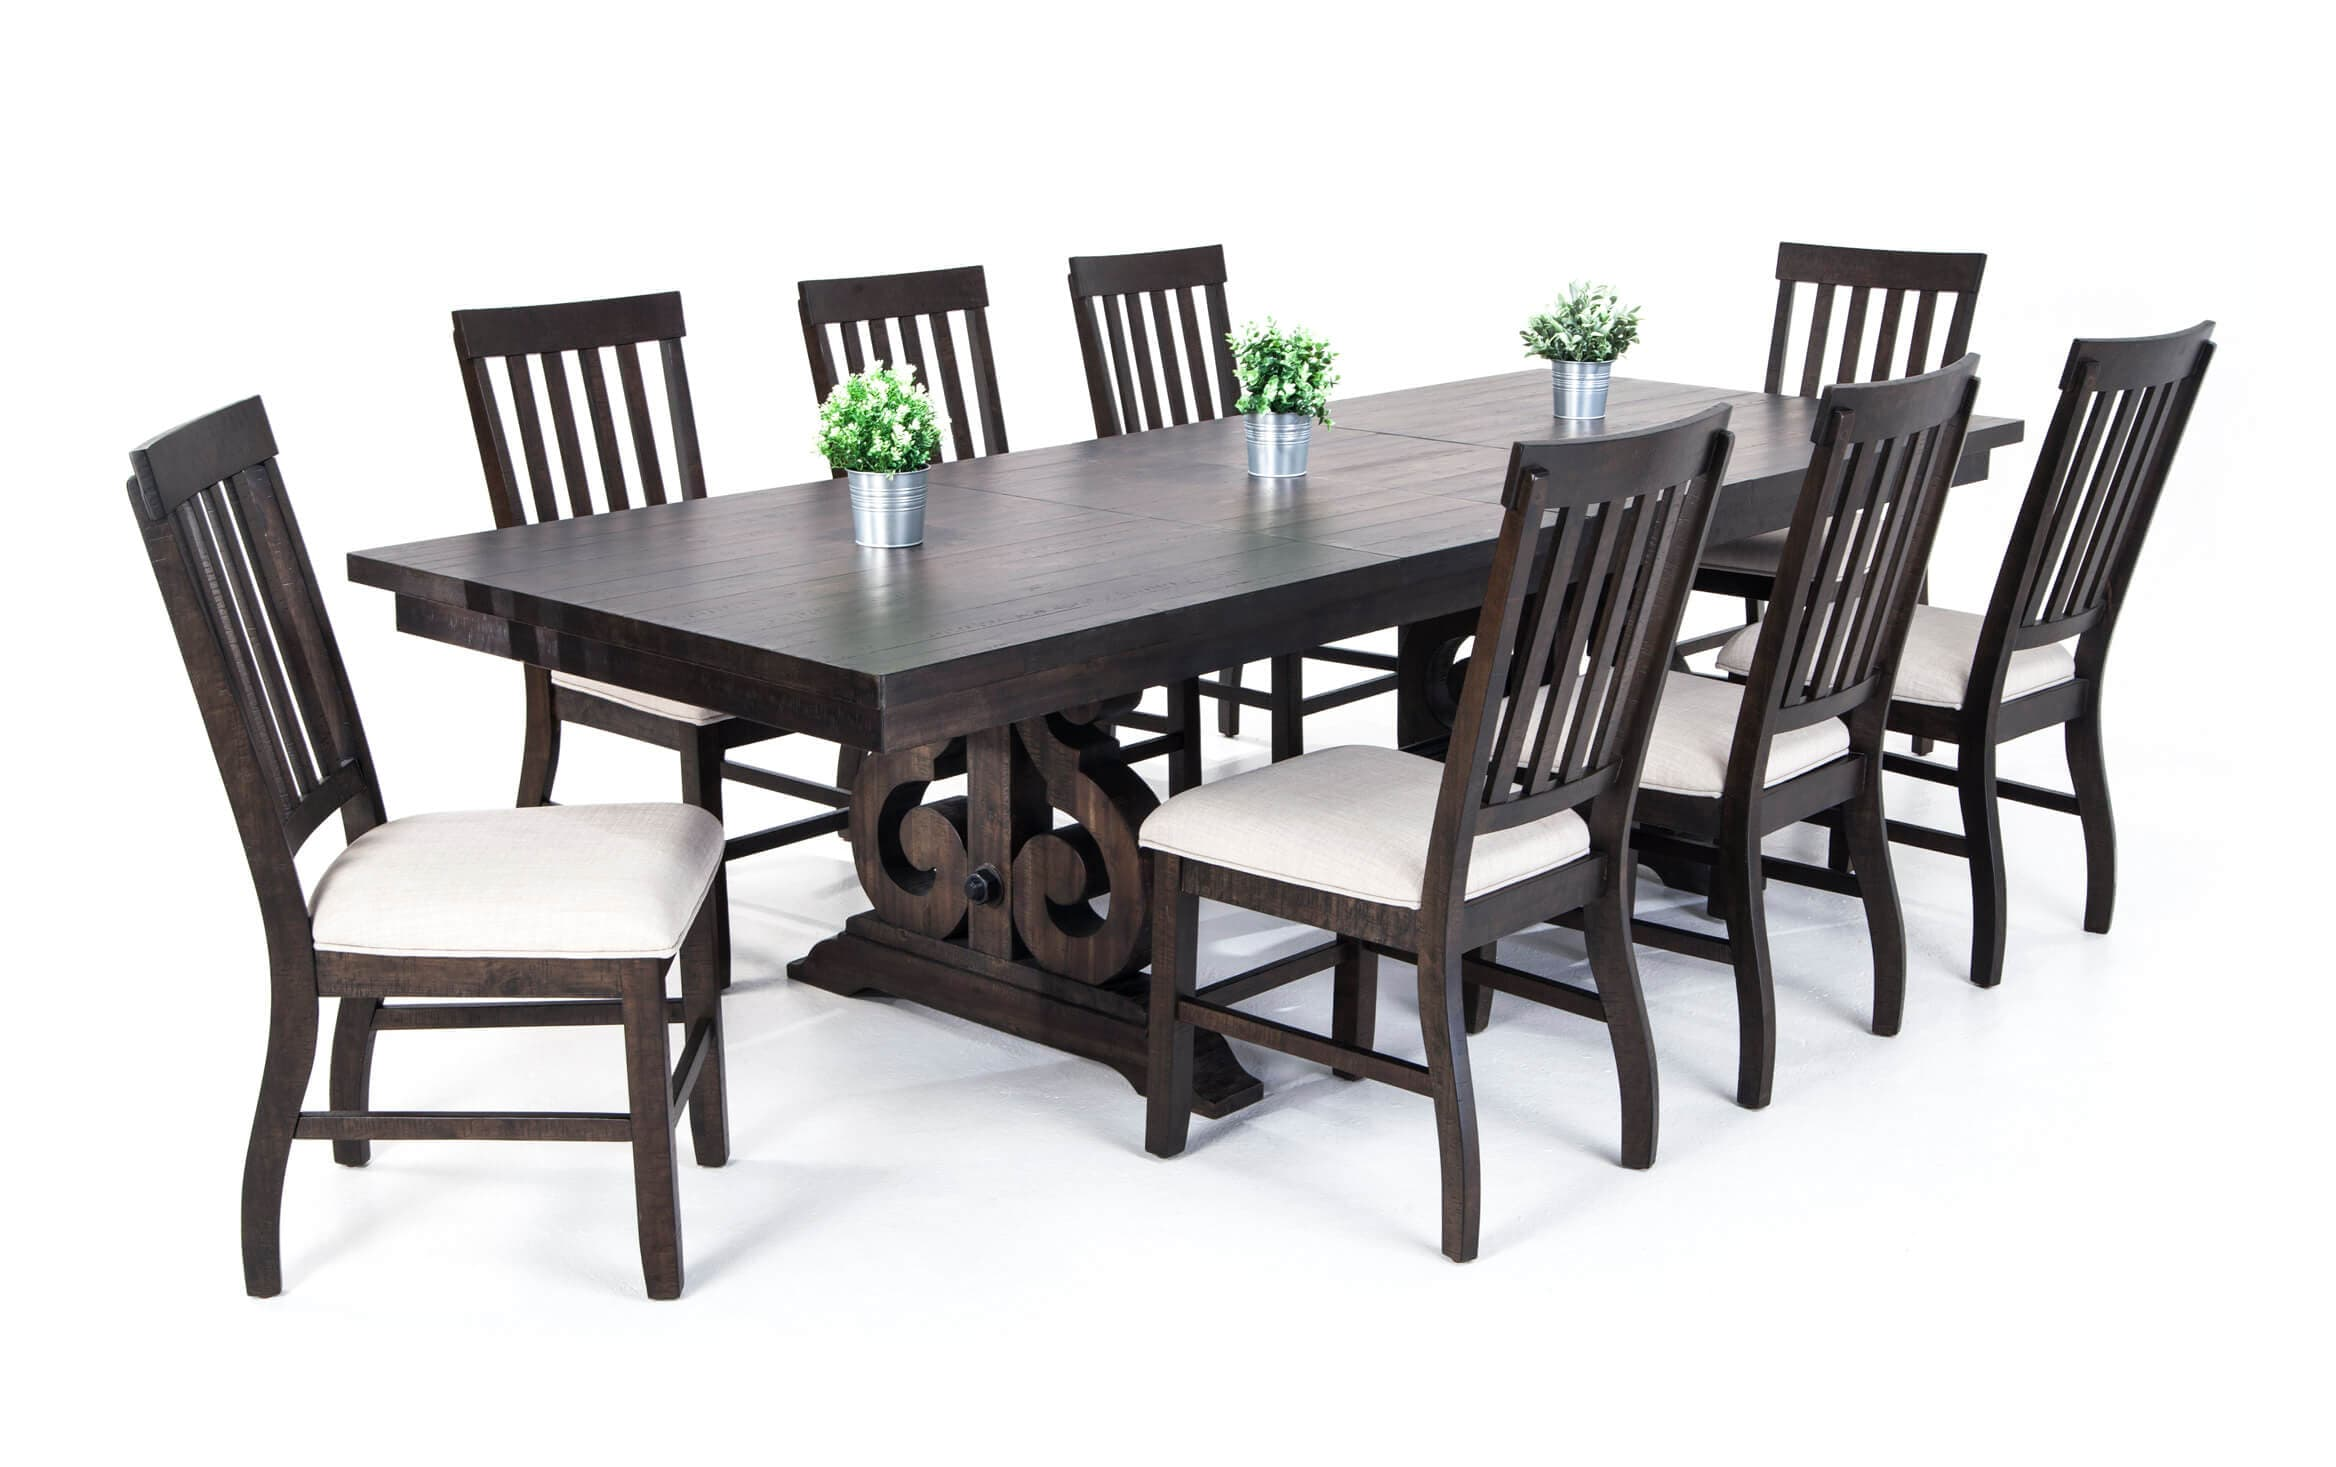 9 Piece Dining Set With Slat Chairs